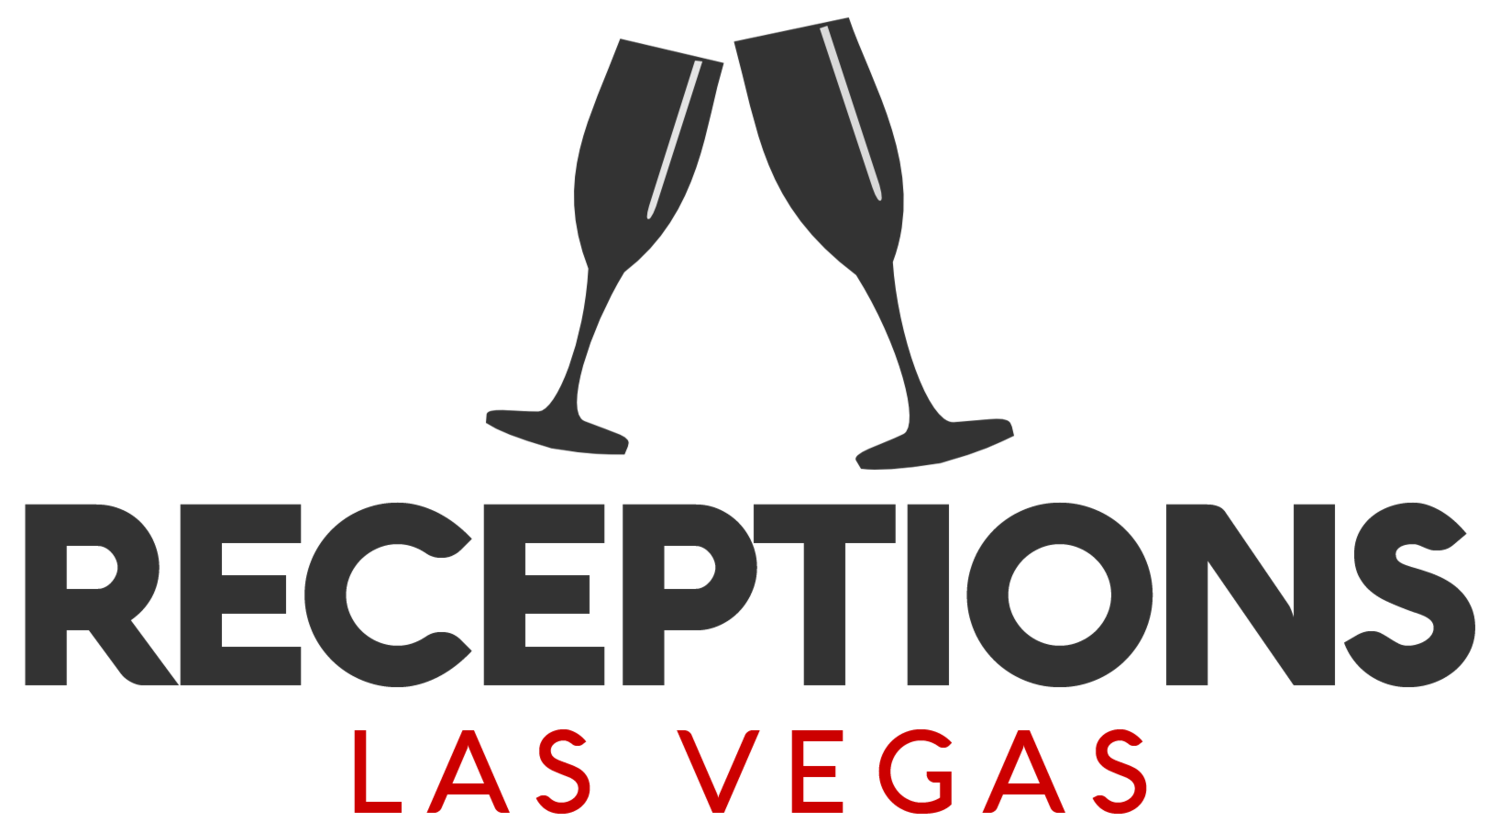 Receptions in Las Vegas | (702) 366-9175 Call today for Specials